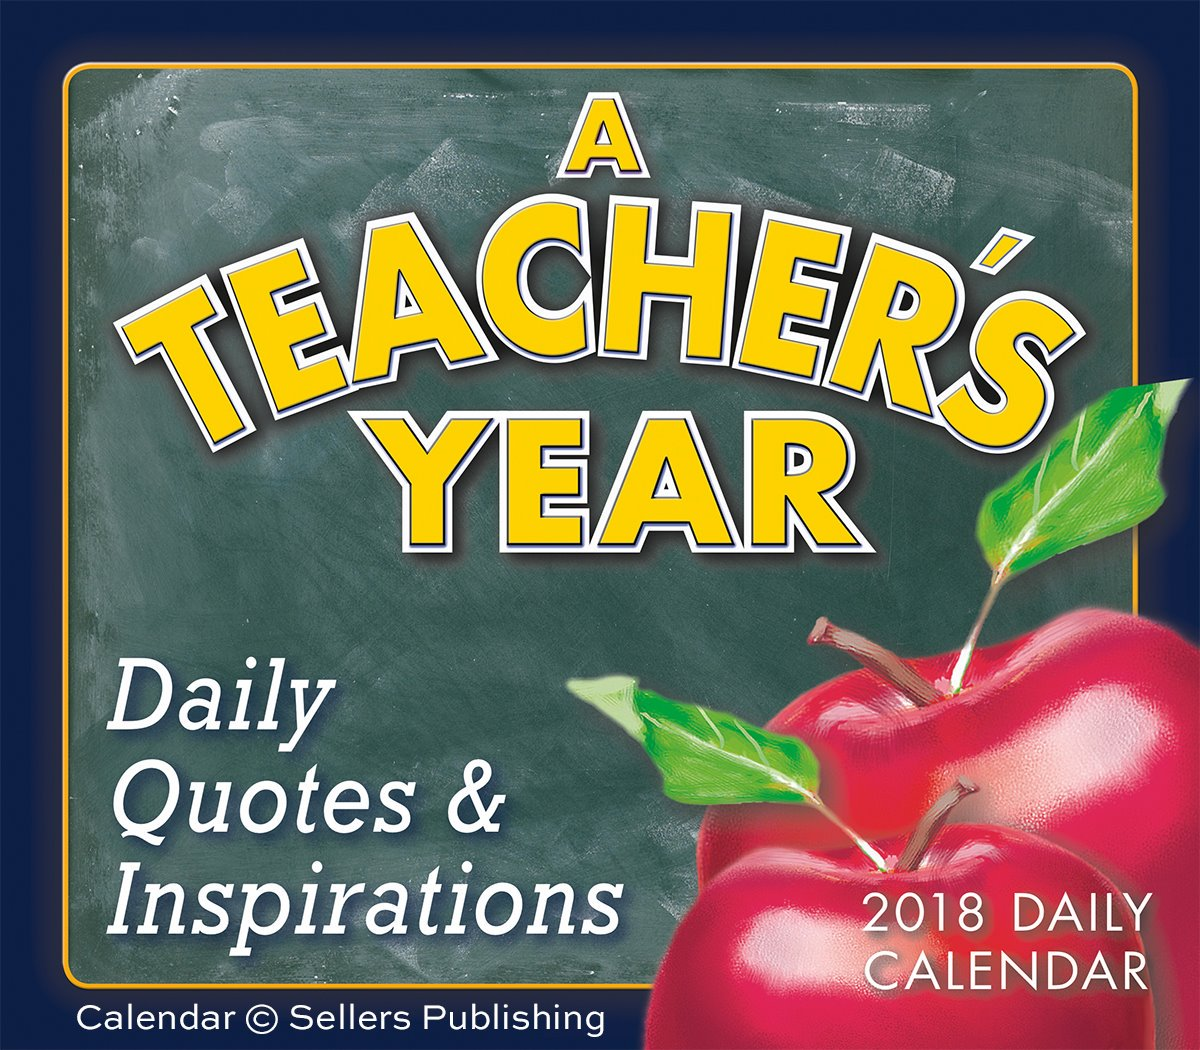 We hope to inspire, honor, and appreciate teachers every day with our boxed daily calendar, A Teachers Year. Happy National Teacher Appreciation Week! (Tomorrow is National Teacher Day.) #teachers #NationalTeacherAppreciationWeek #NationalTeachersDay #Iloveteachers #teachersrock